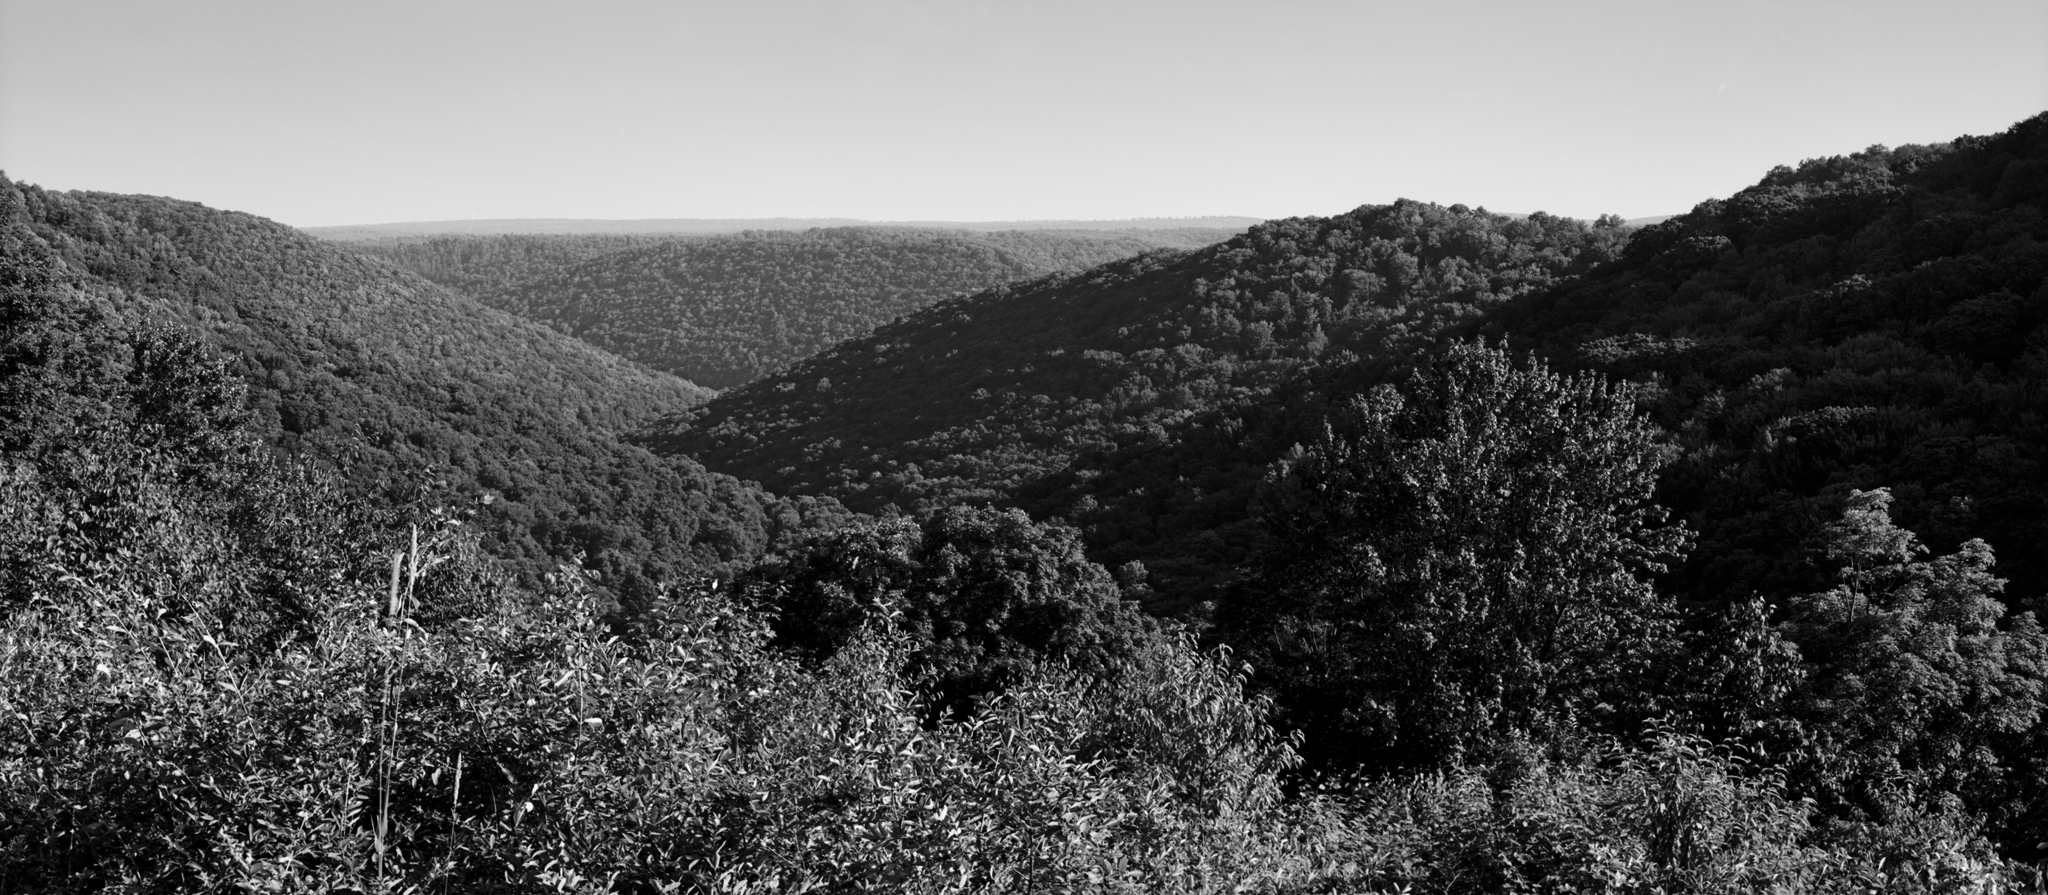 4x5_for_365_project_0198_water_tank_overlook.png